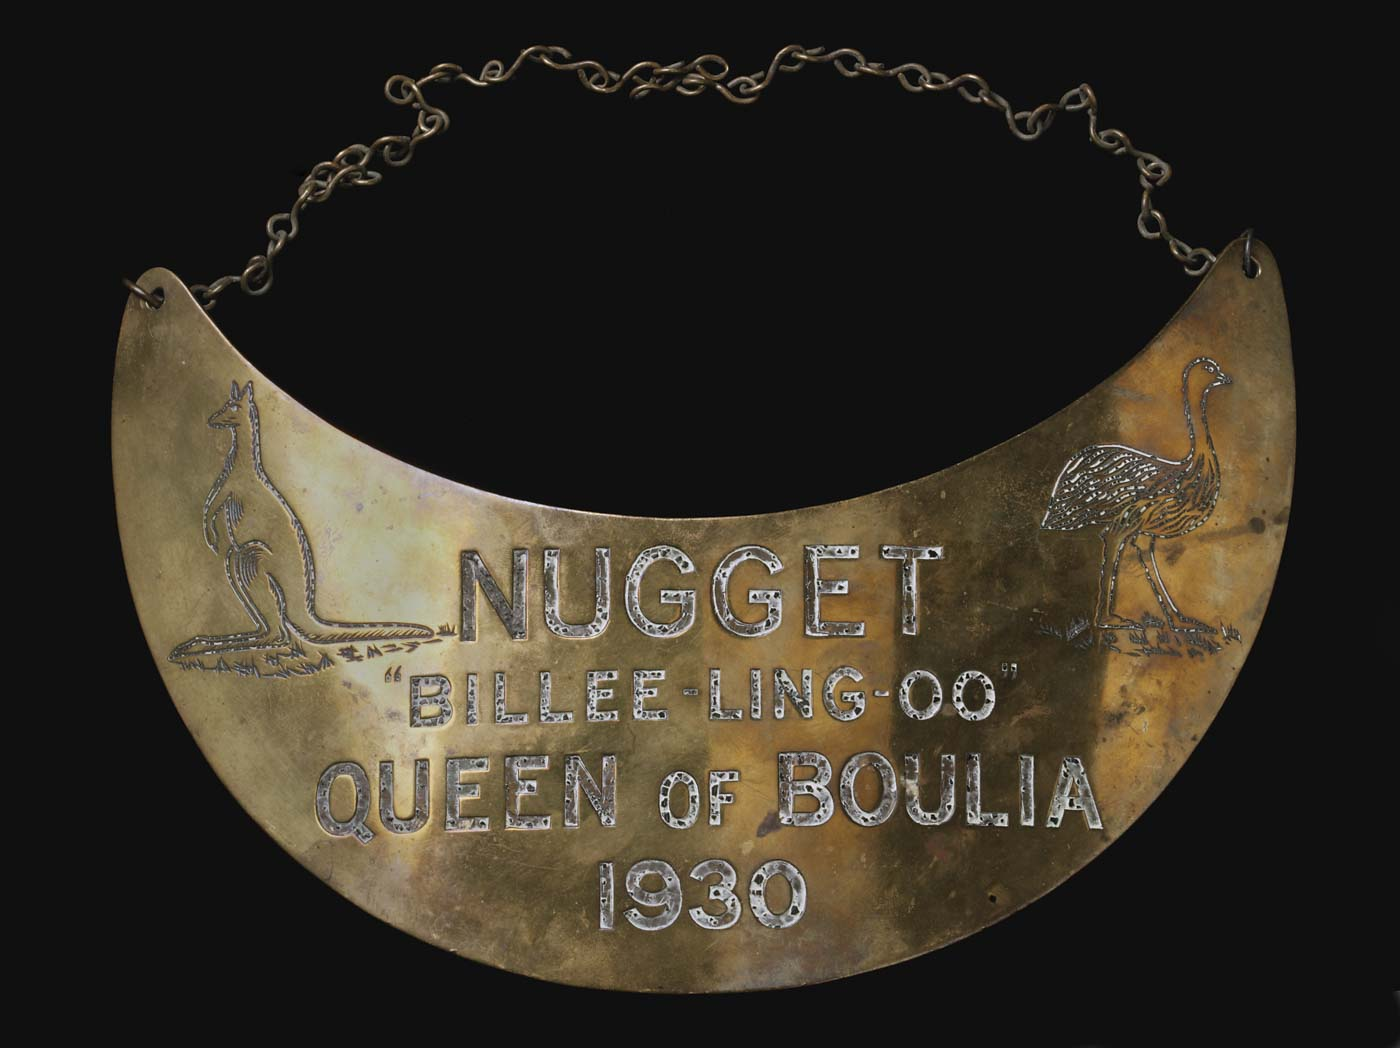 Crescent-shaped breastplate, with chain at top, engraved with an image of kangaroo and emu, and text: 'Nugget, 'Billee-ling-oo', Queen of Boulia, 1930'. - click to view larger image